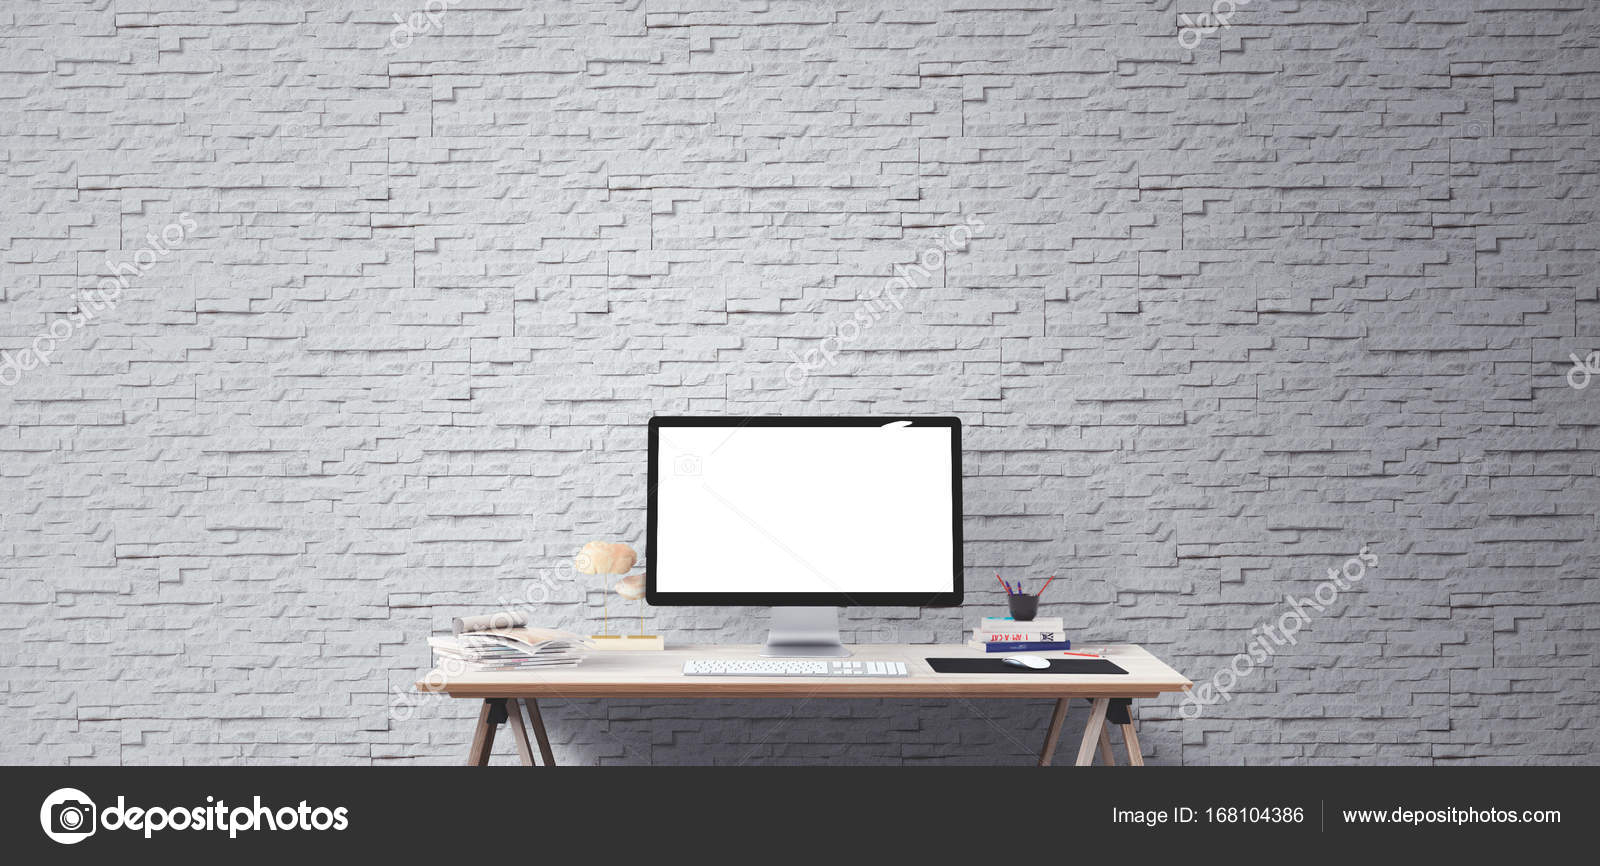 Computer Display And Office Tools On Desk Desktop Screen Isolated Modern Creative Workspace Background